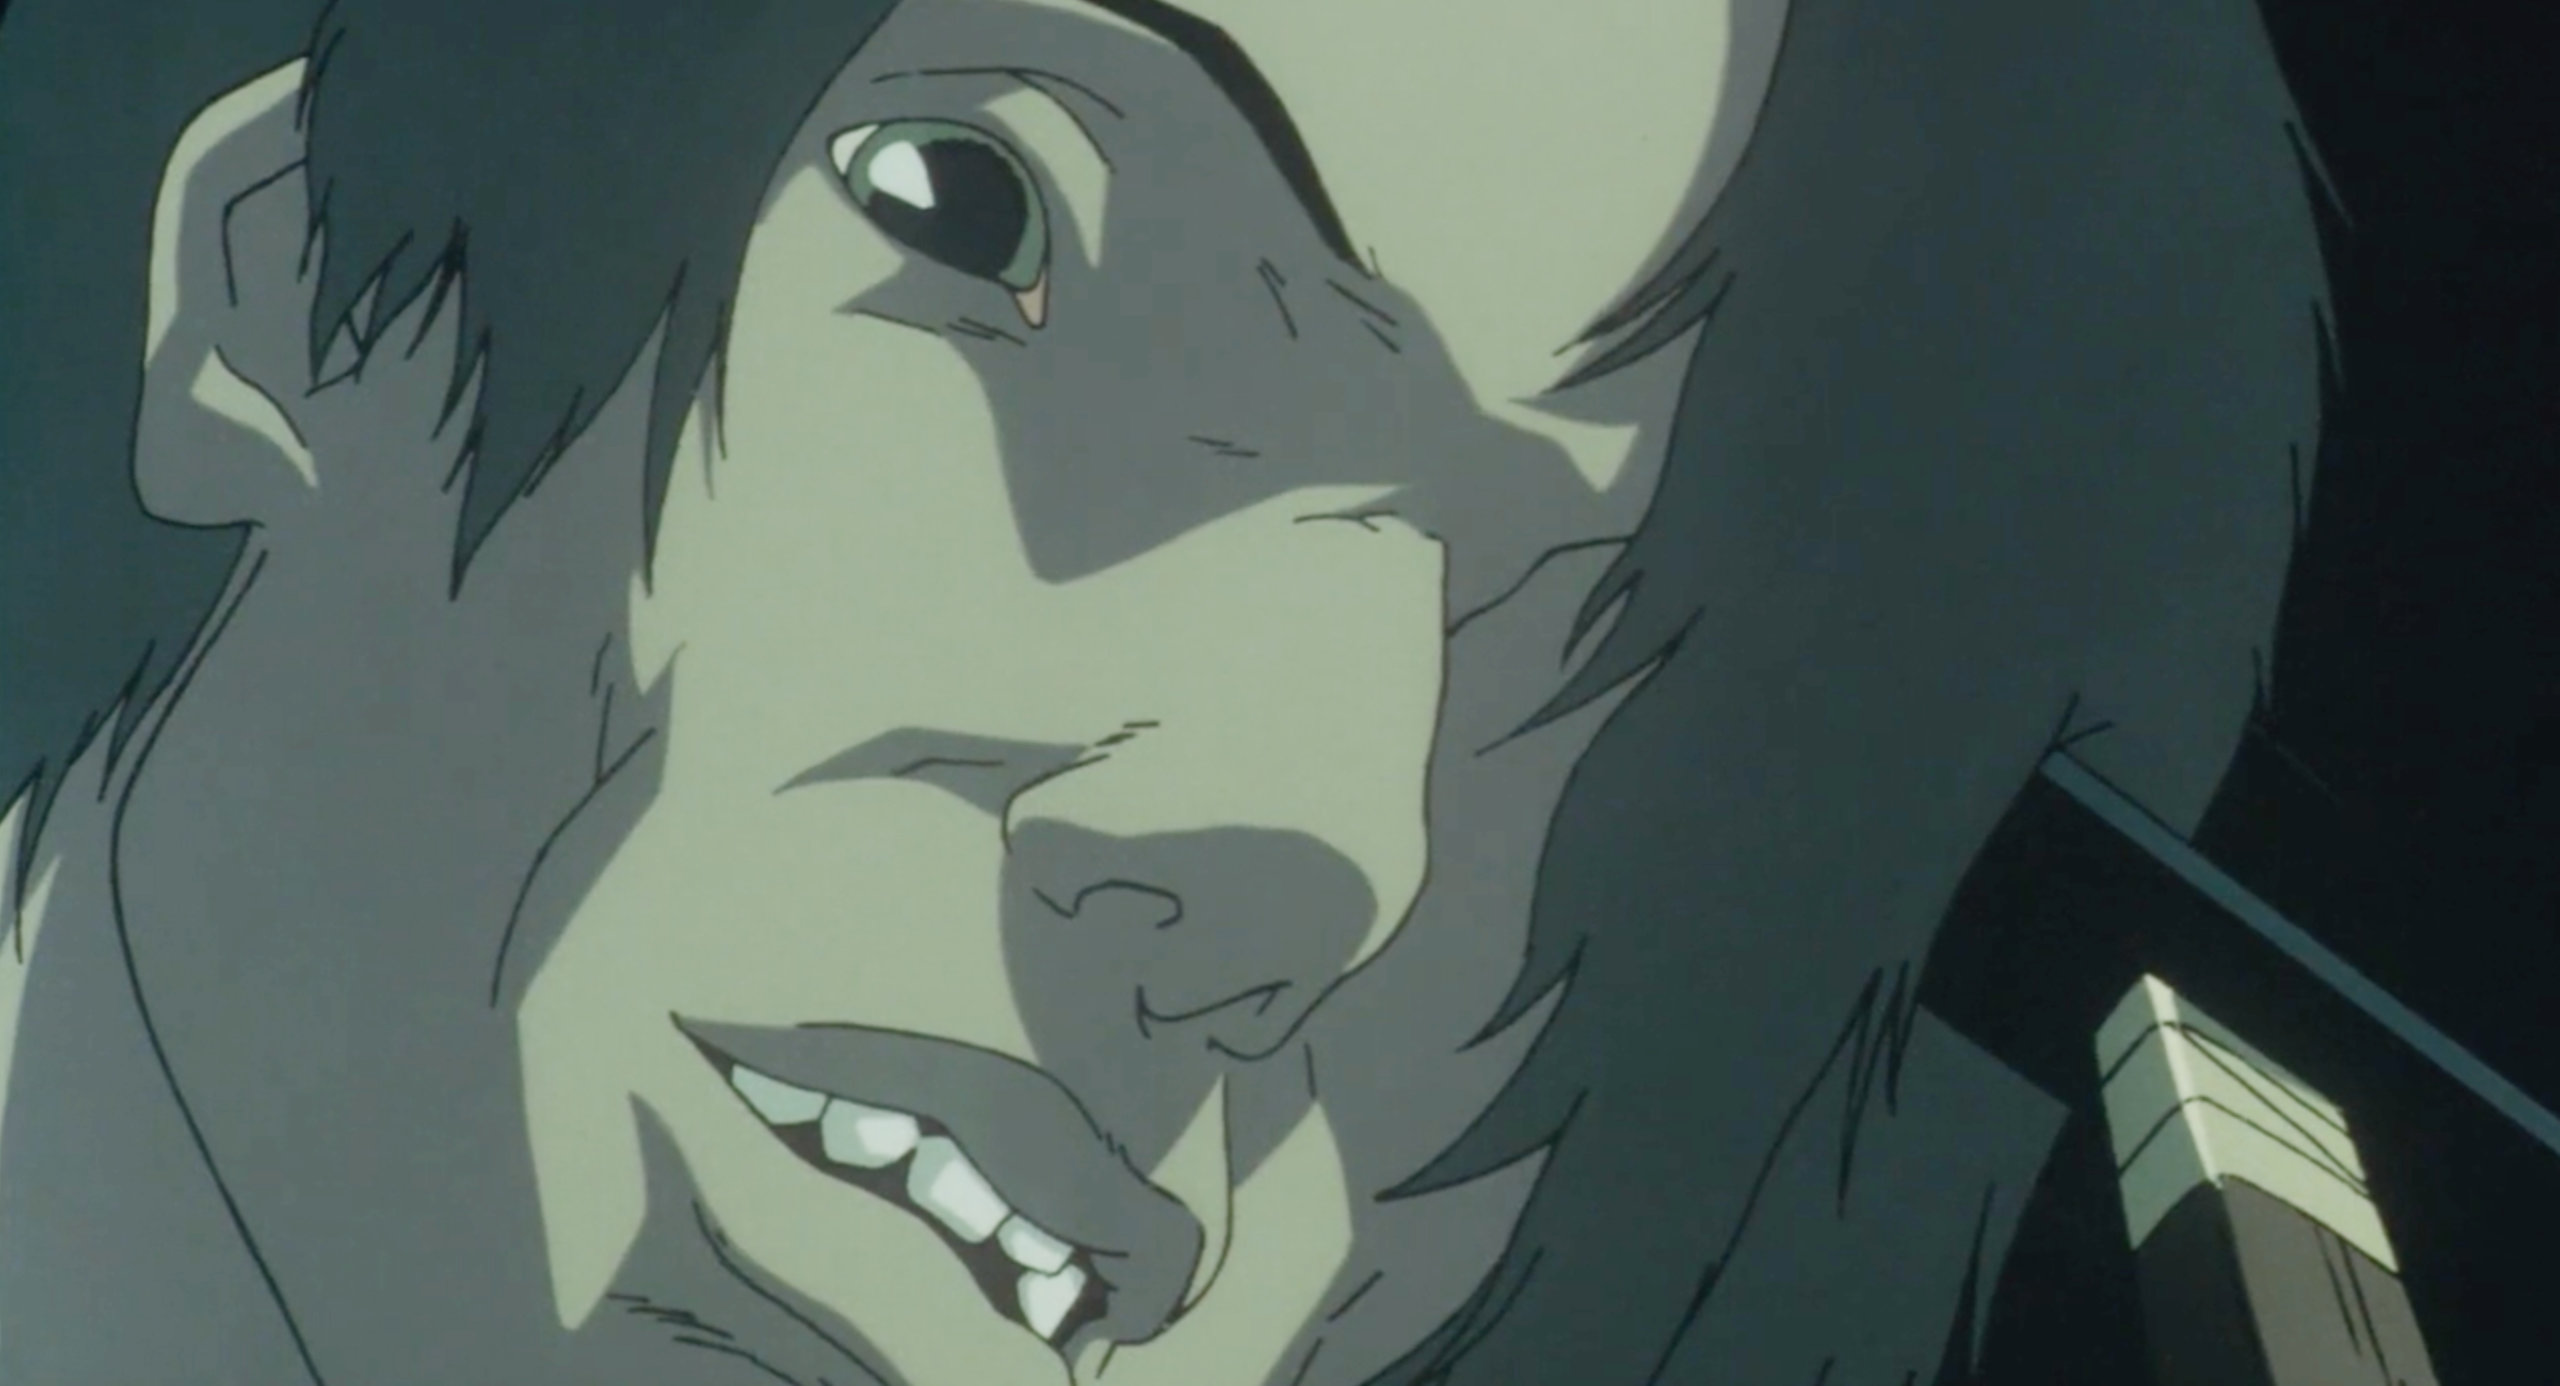 Mima hits Me-Mania with a hammer in Perfect Blue